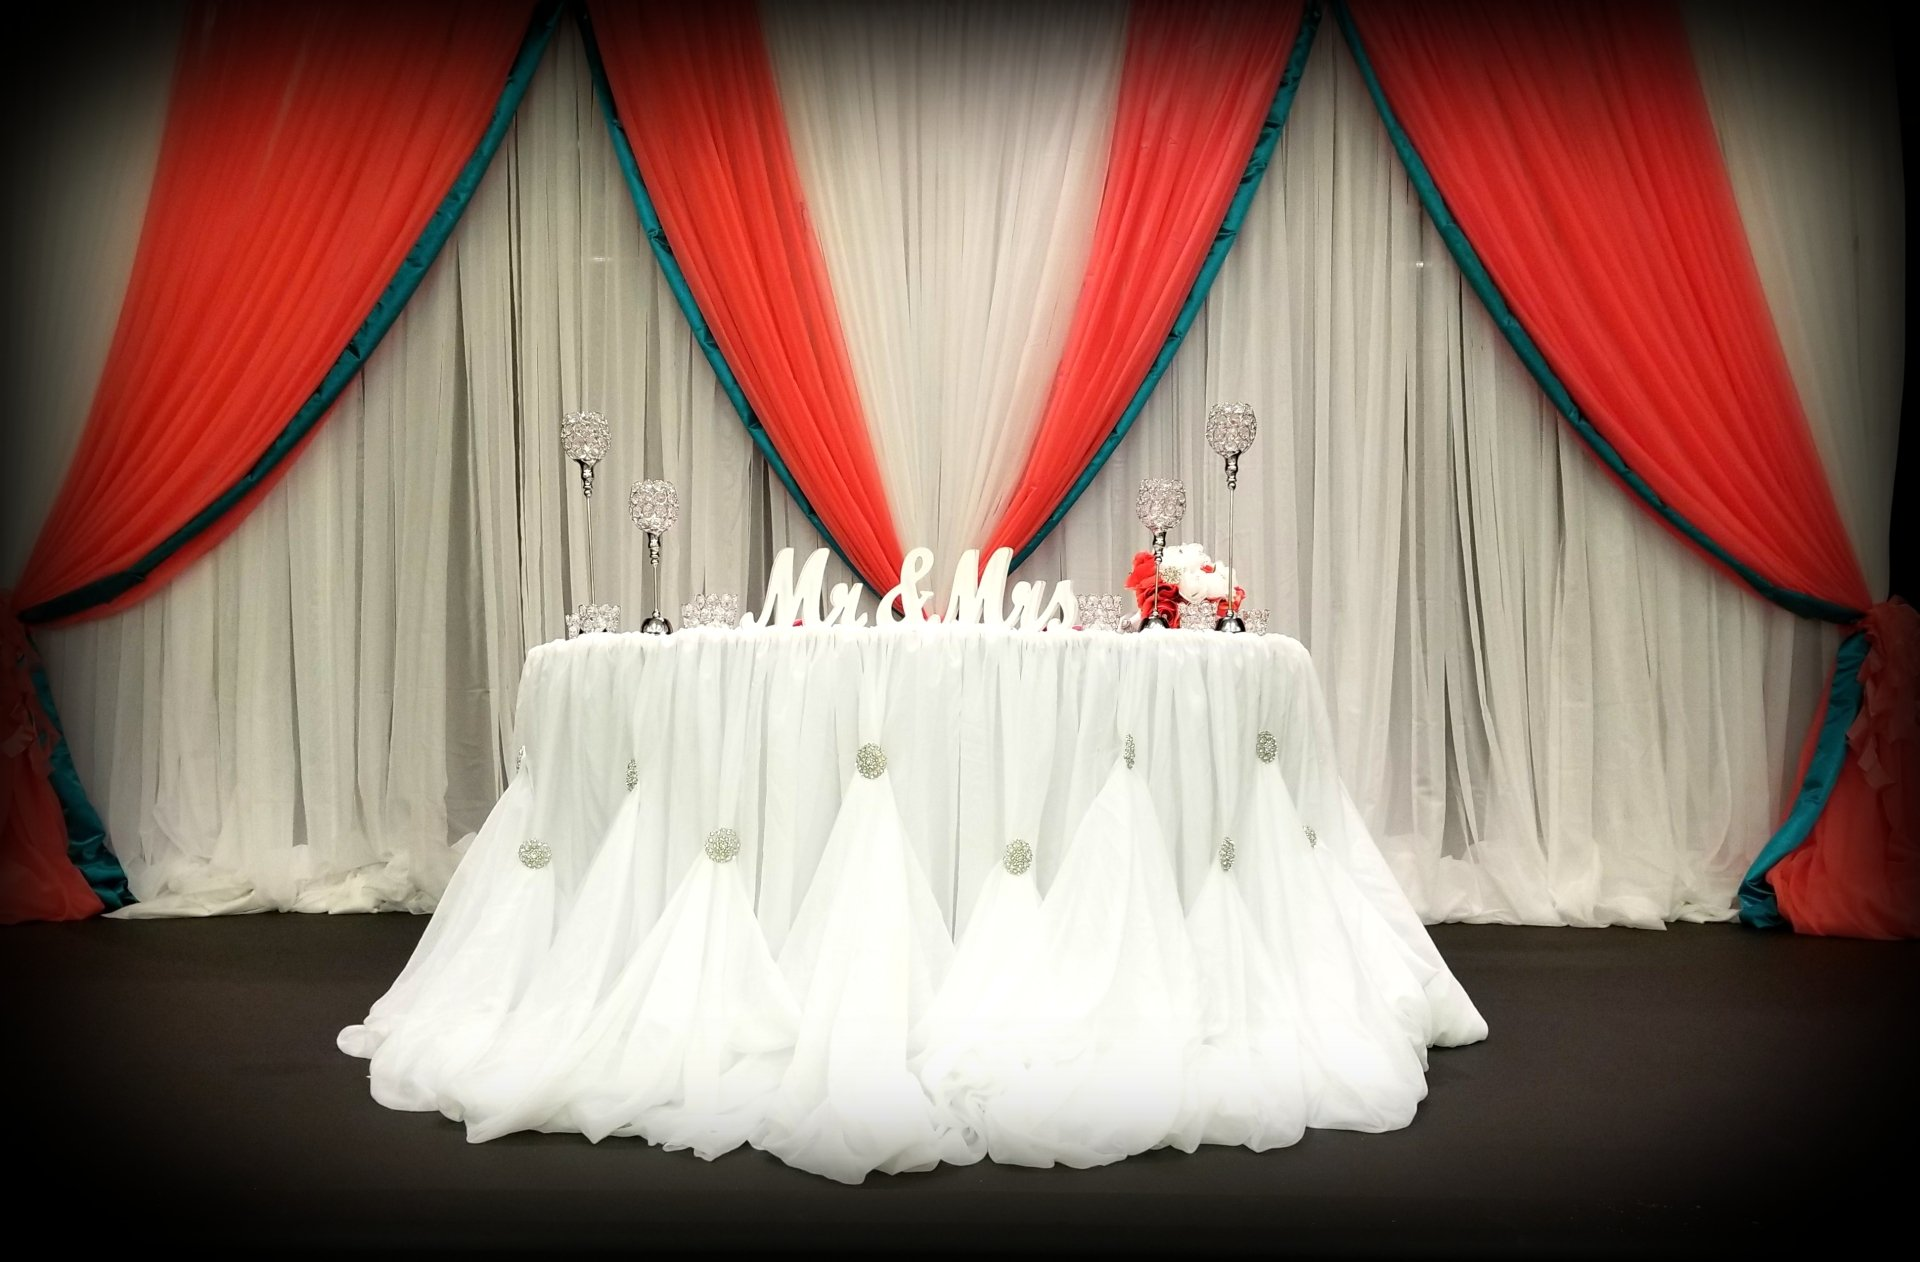 MLG Event Draping and Designs image 10